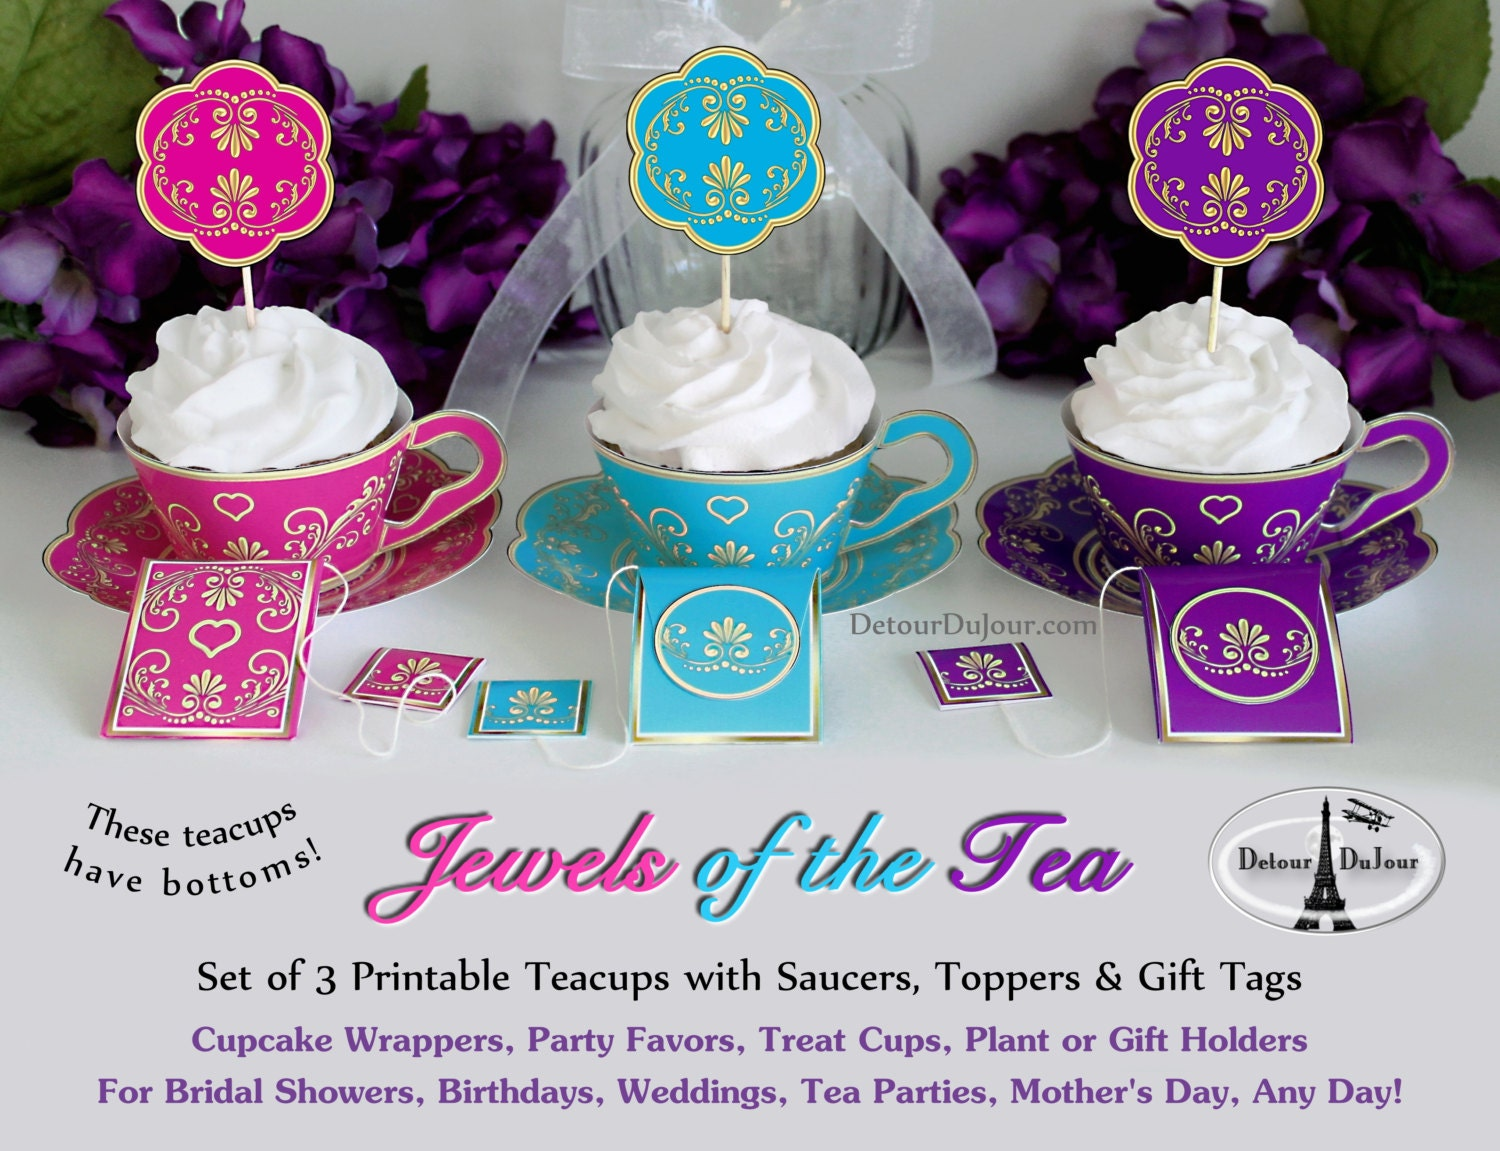 tea party essay On december 16, 1773, a monumental event took place that was crucial to the growth of the american revolution this event was known as the boston tea party, taking place in boston, a city in the british colony of massachusetts.